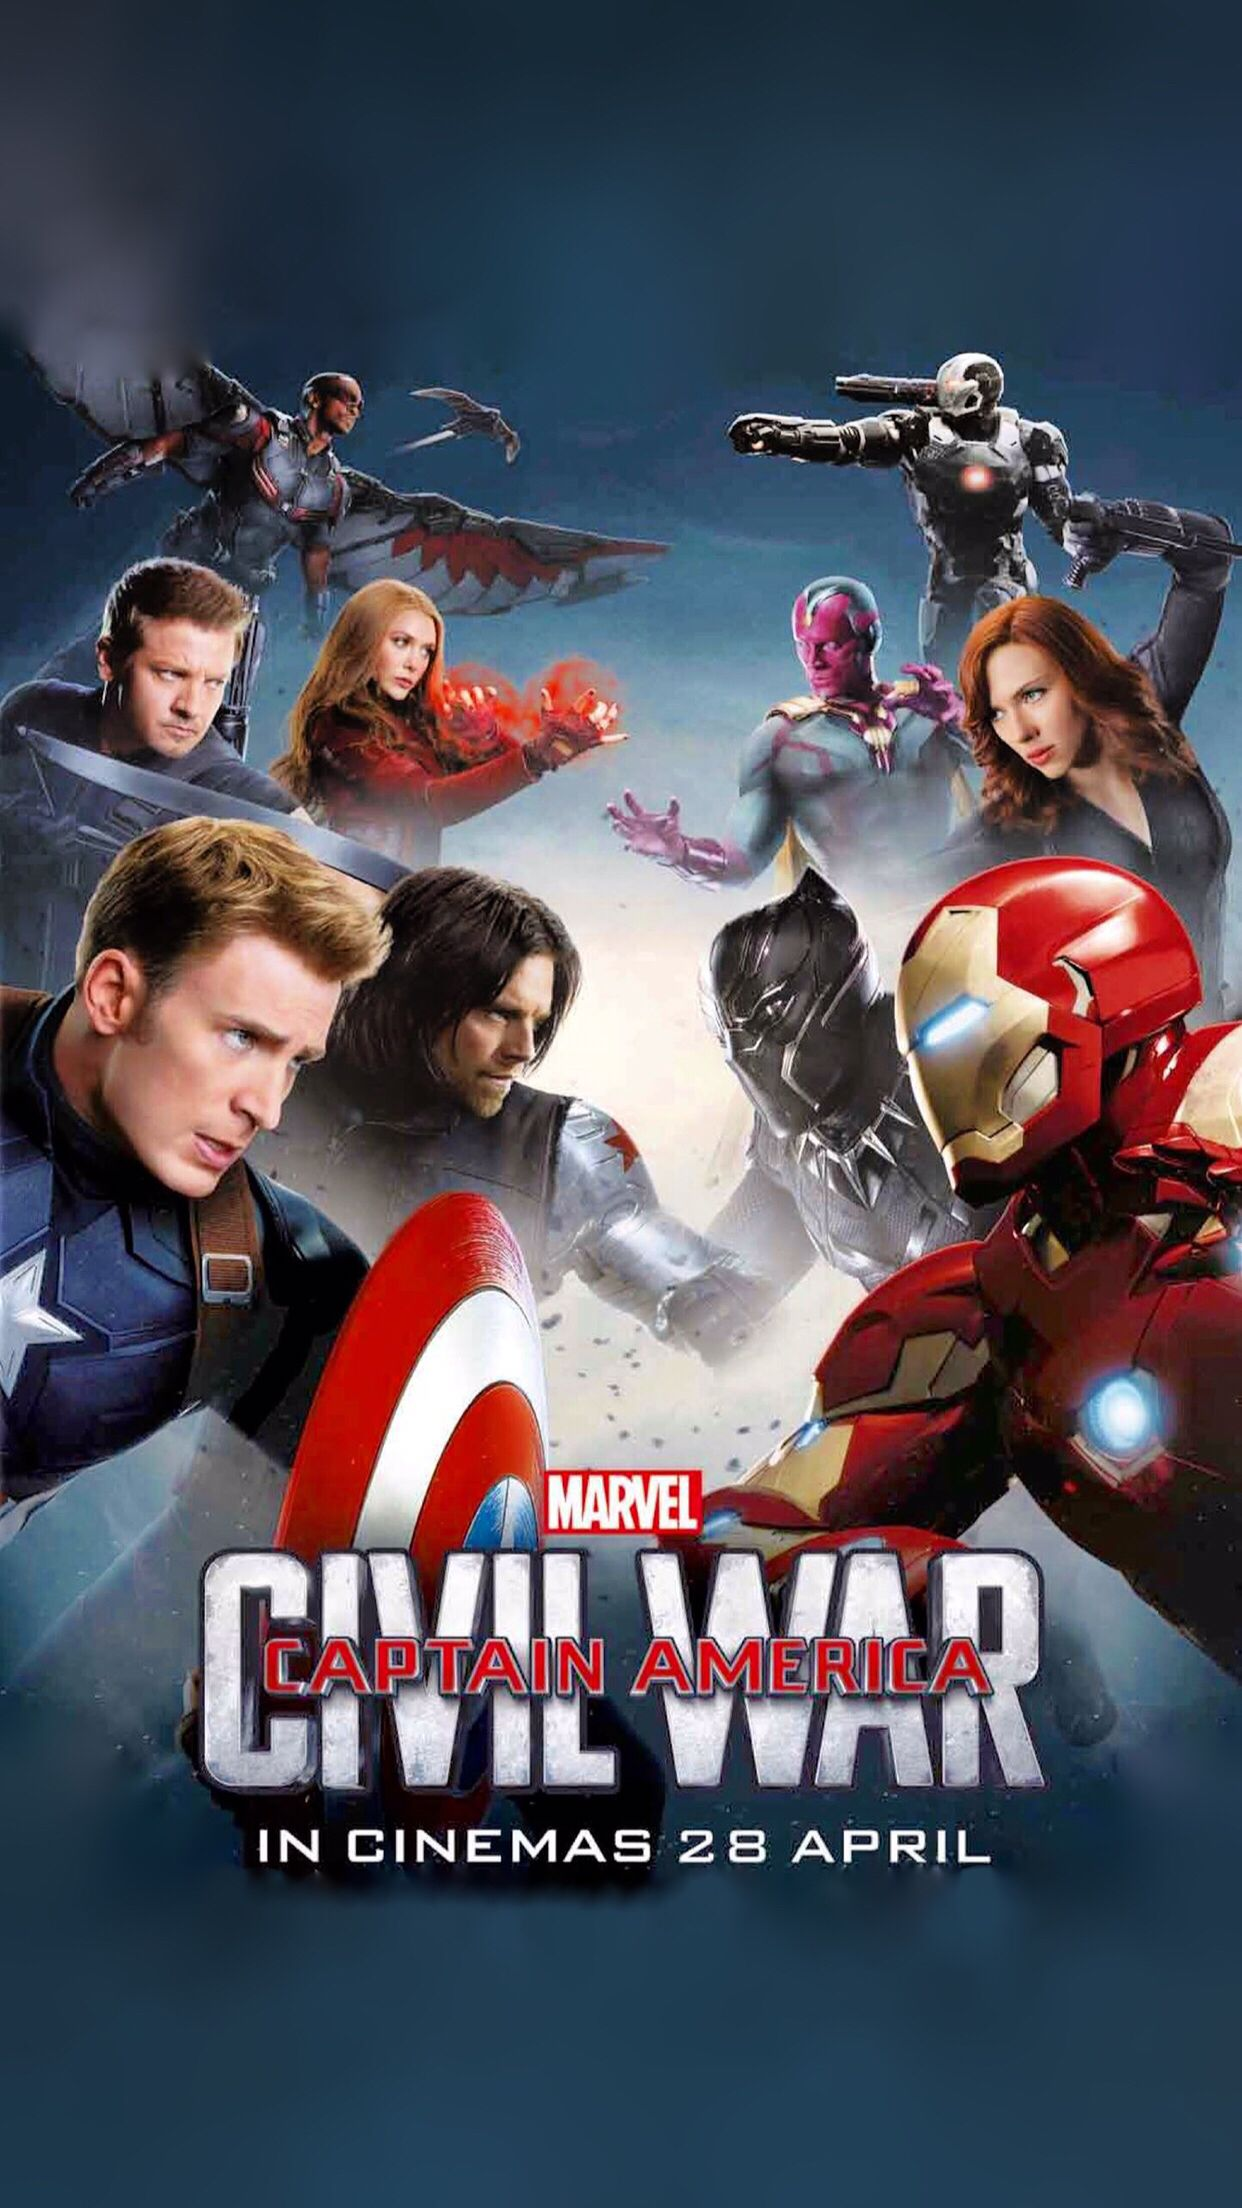 Captain America Civil War Wallpaper For IPhone 6 Plus